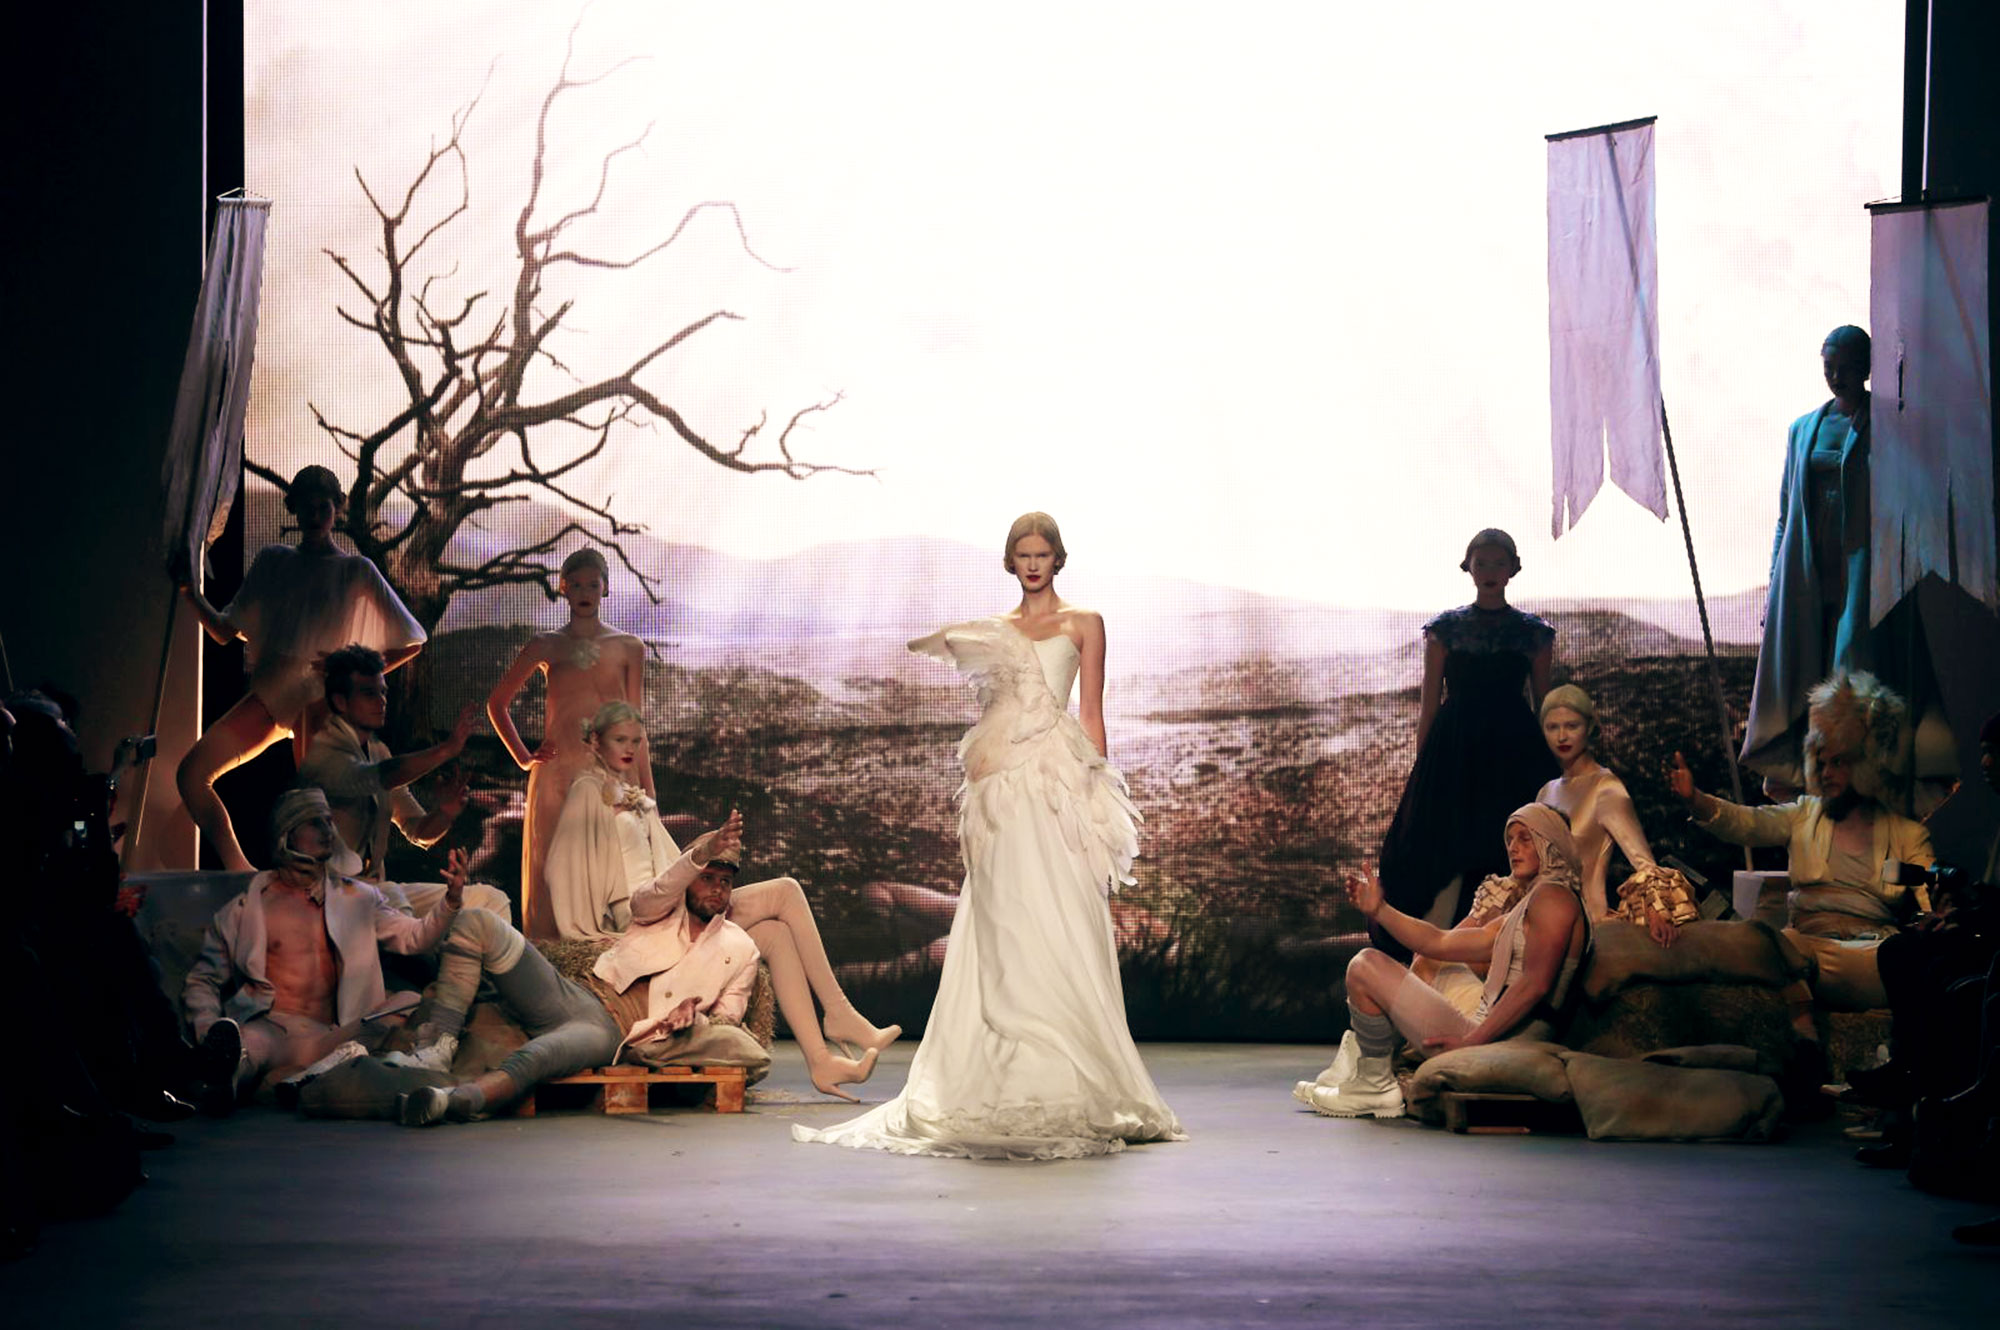 Dennis Diem Nightingale Daan Colijn backdrop visual fashion show Amsterdam fashion Week models war wasteland soldiers swan wedding dress tableau vivant